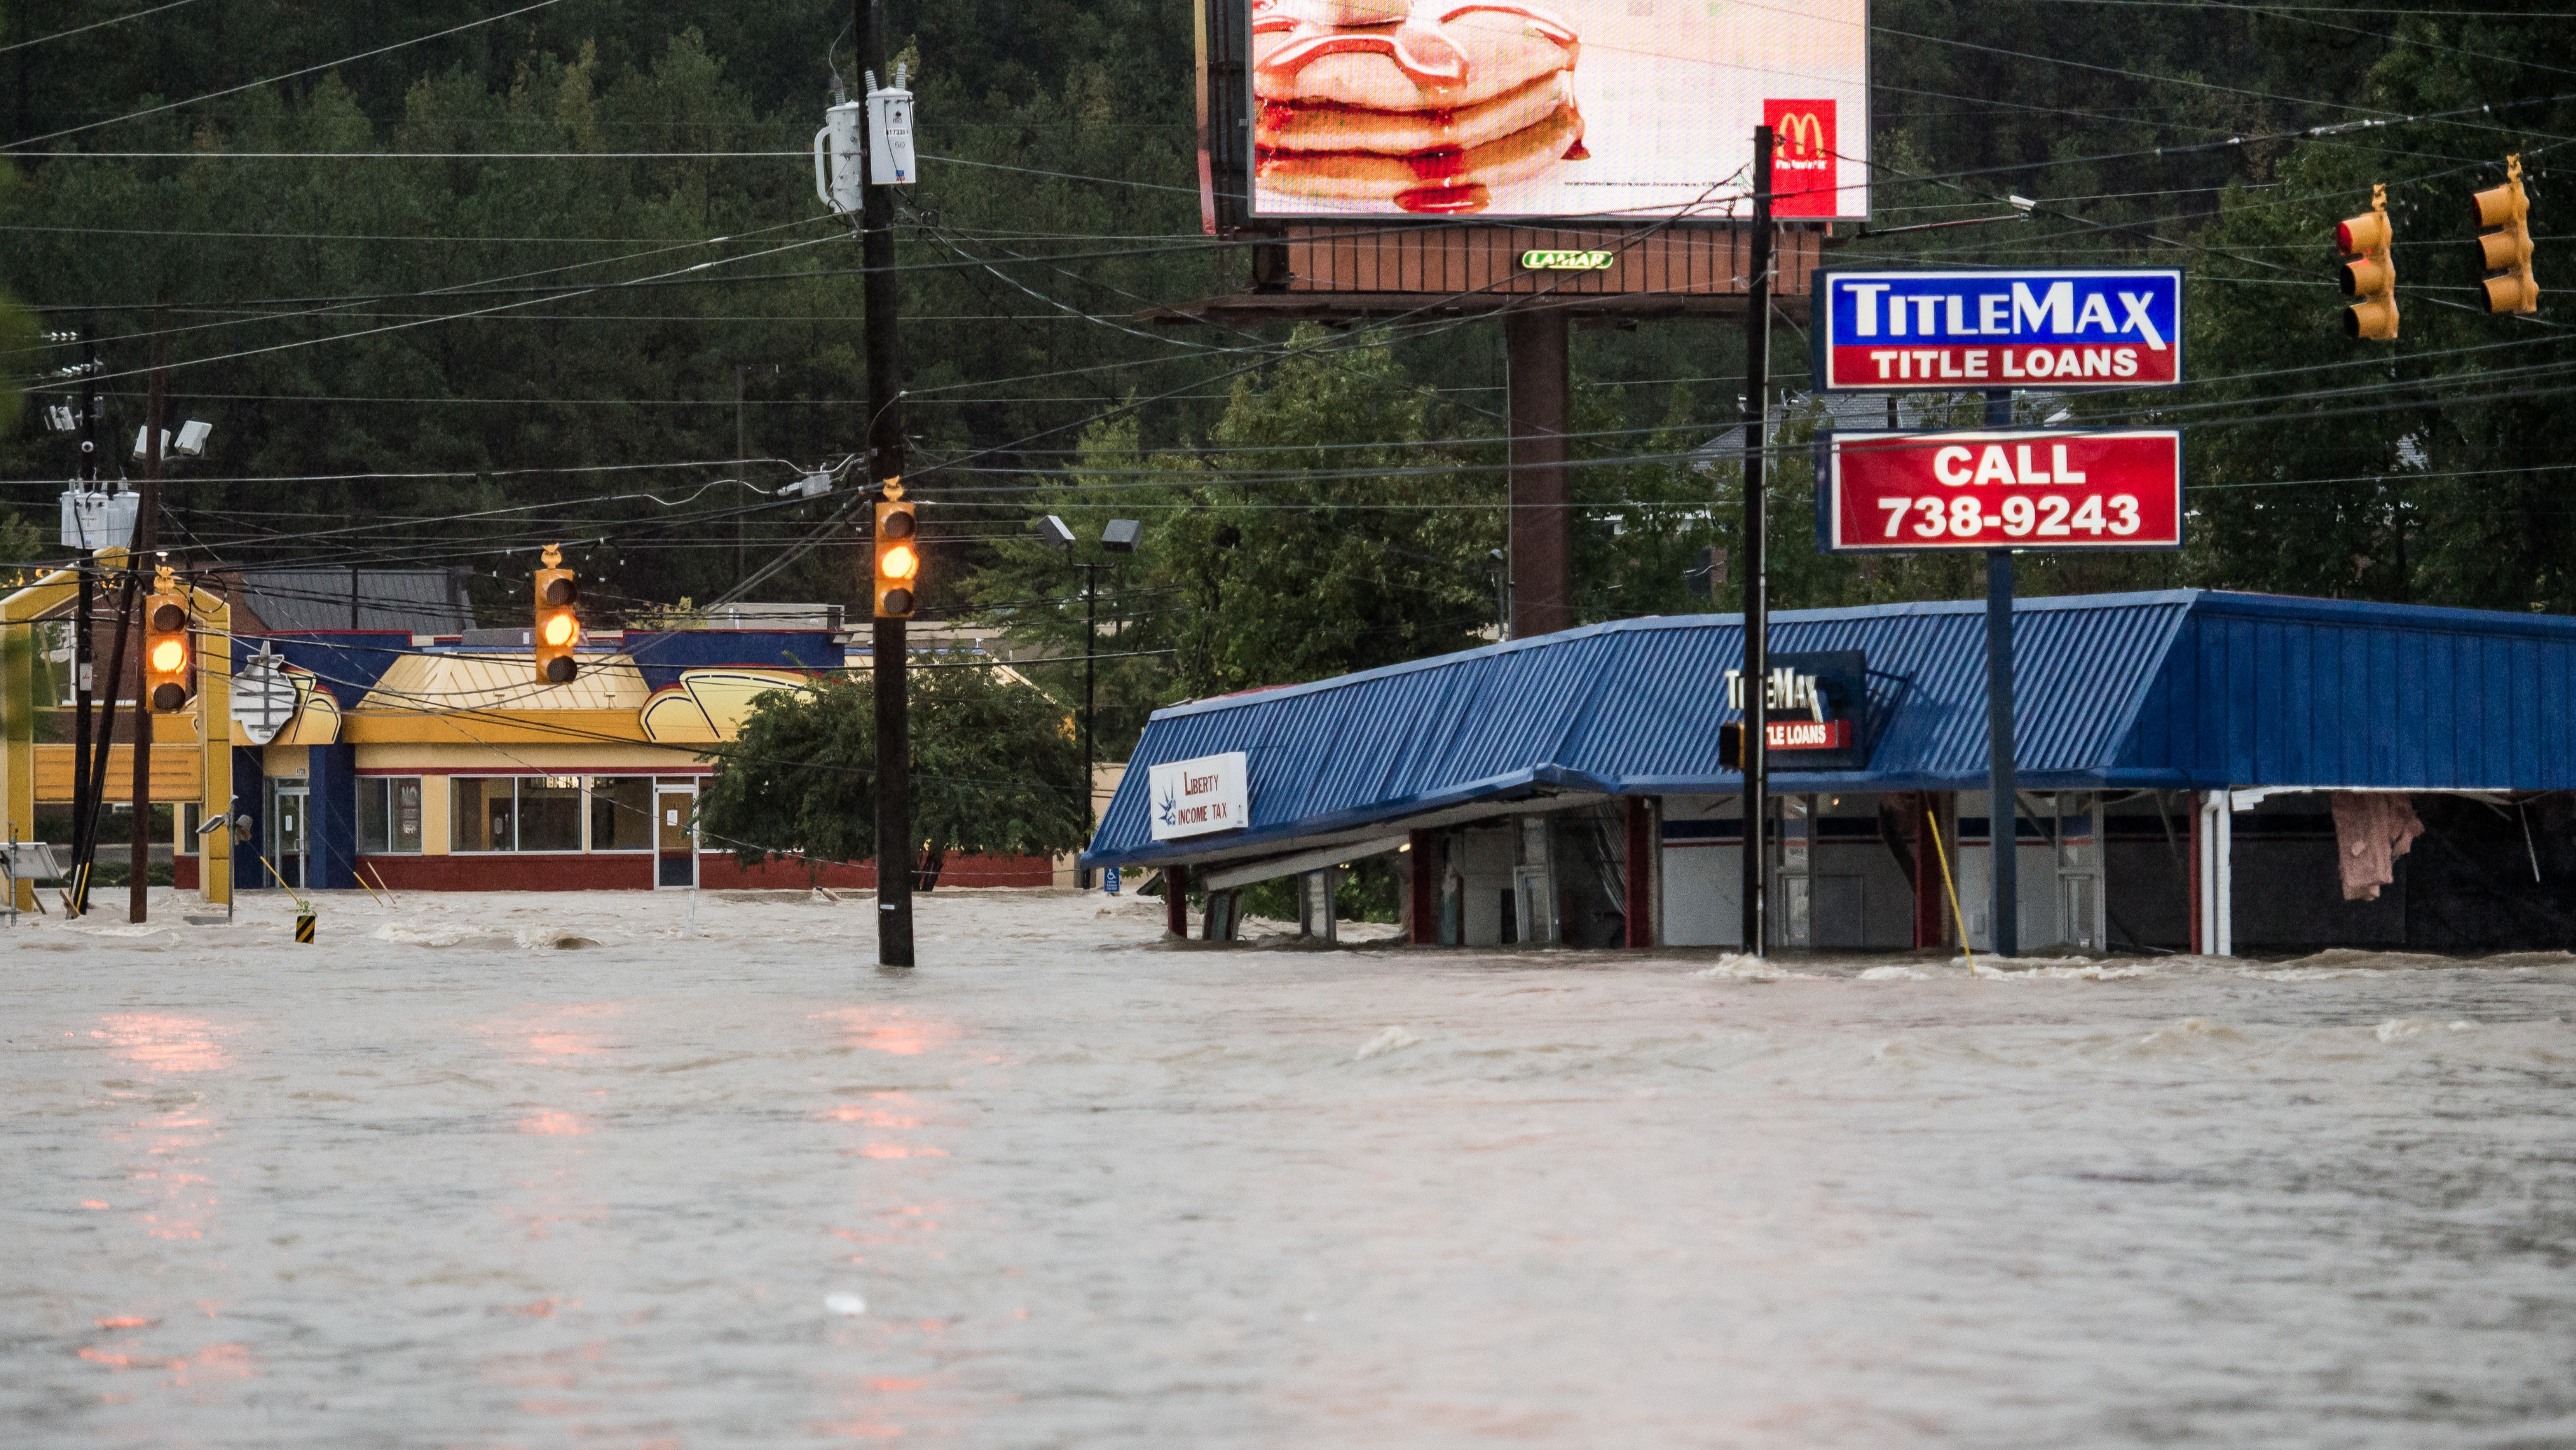 Lack of Flood Insurance Could Leave Small Businesses Underwater